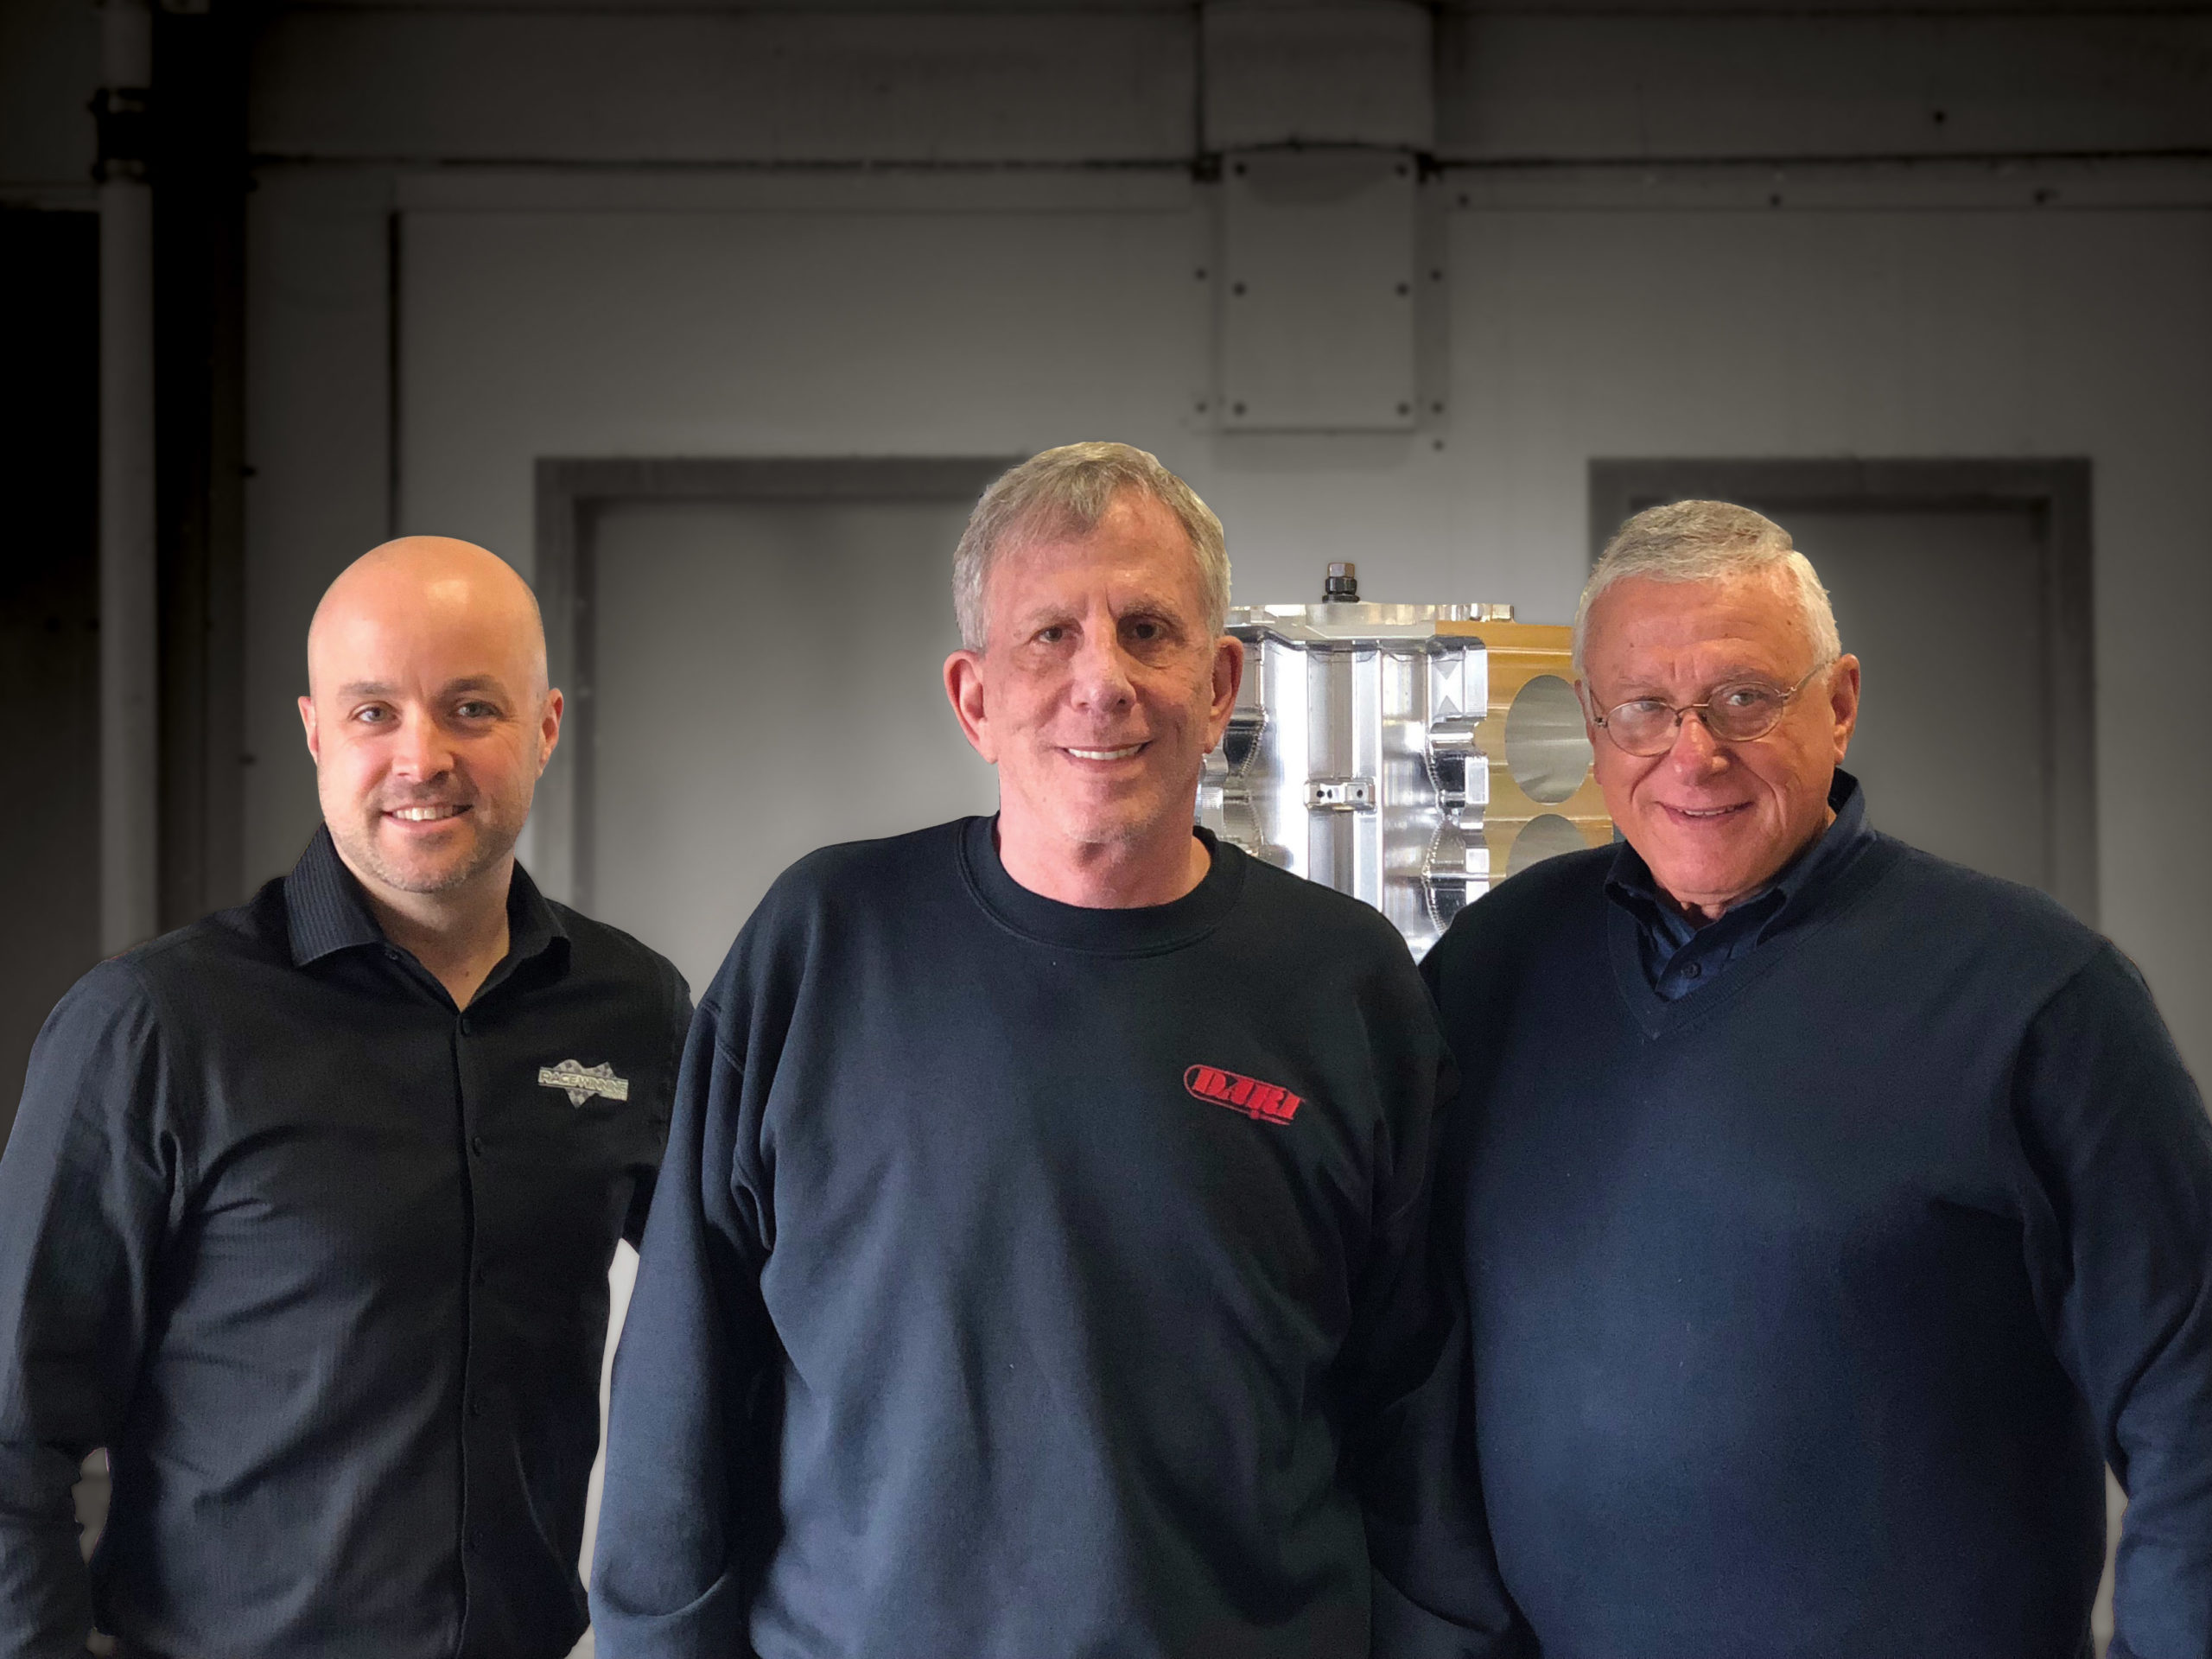 From left to right: Brian Reese, Race Winning Brands CEO; Richard Maskin, Dart Machinery's founder; and Bob Romanelli, Race Winn